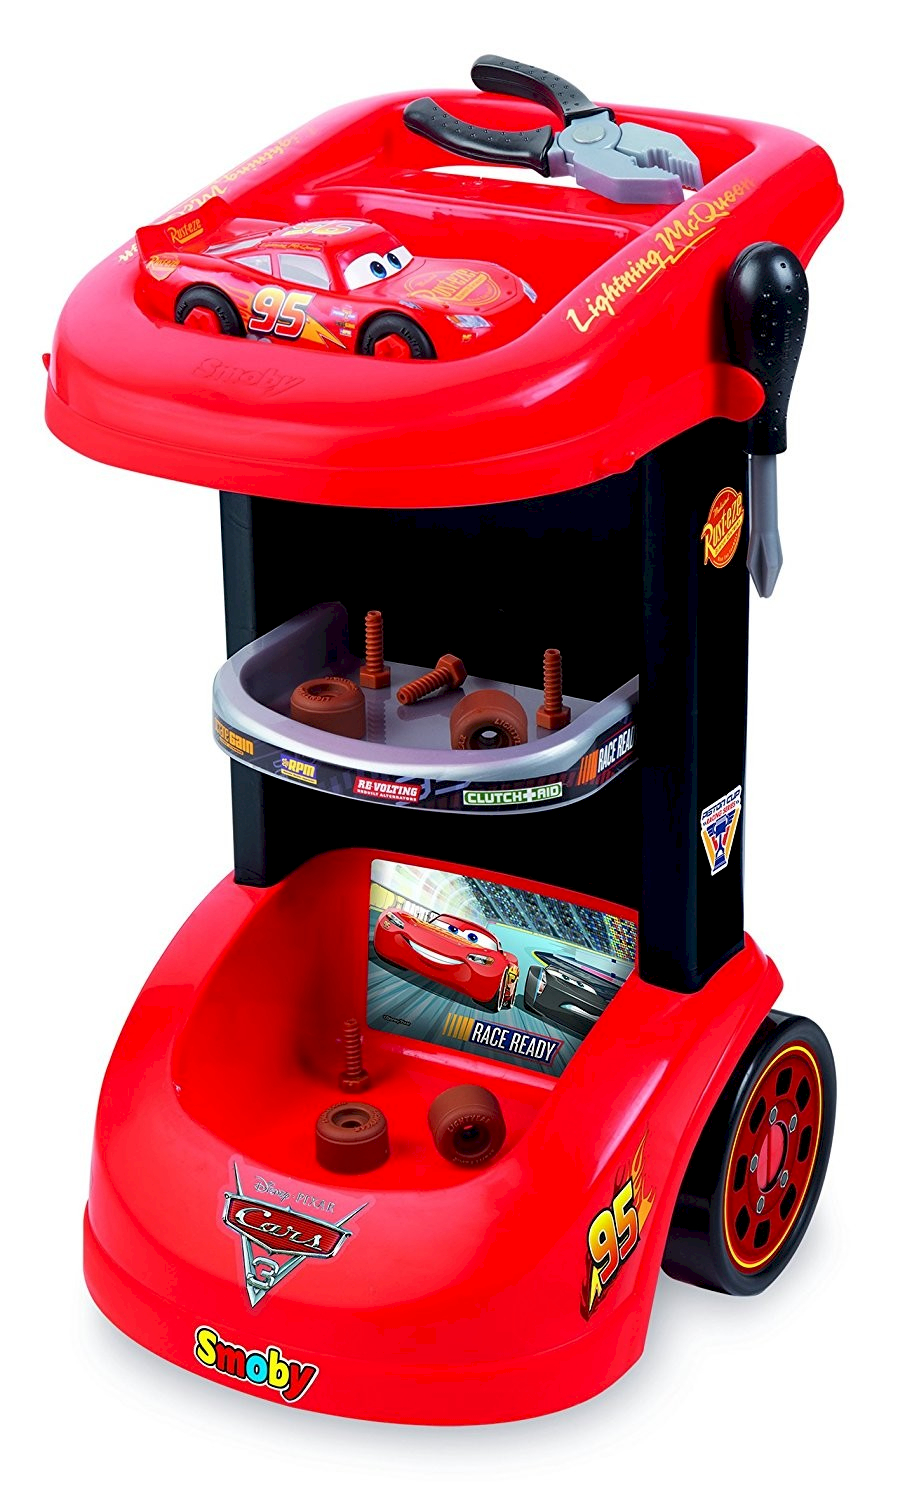 Smoby Chariot Cars 3 + MC Queen